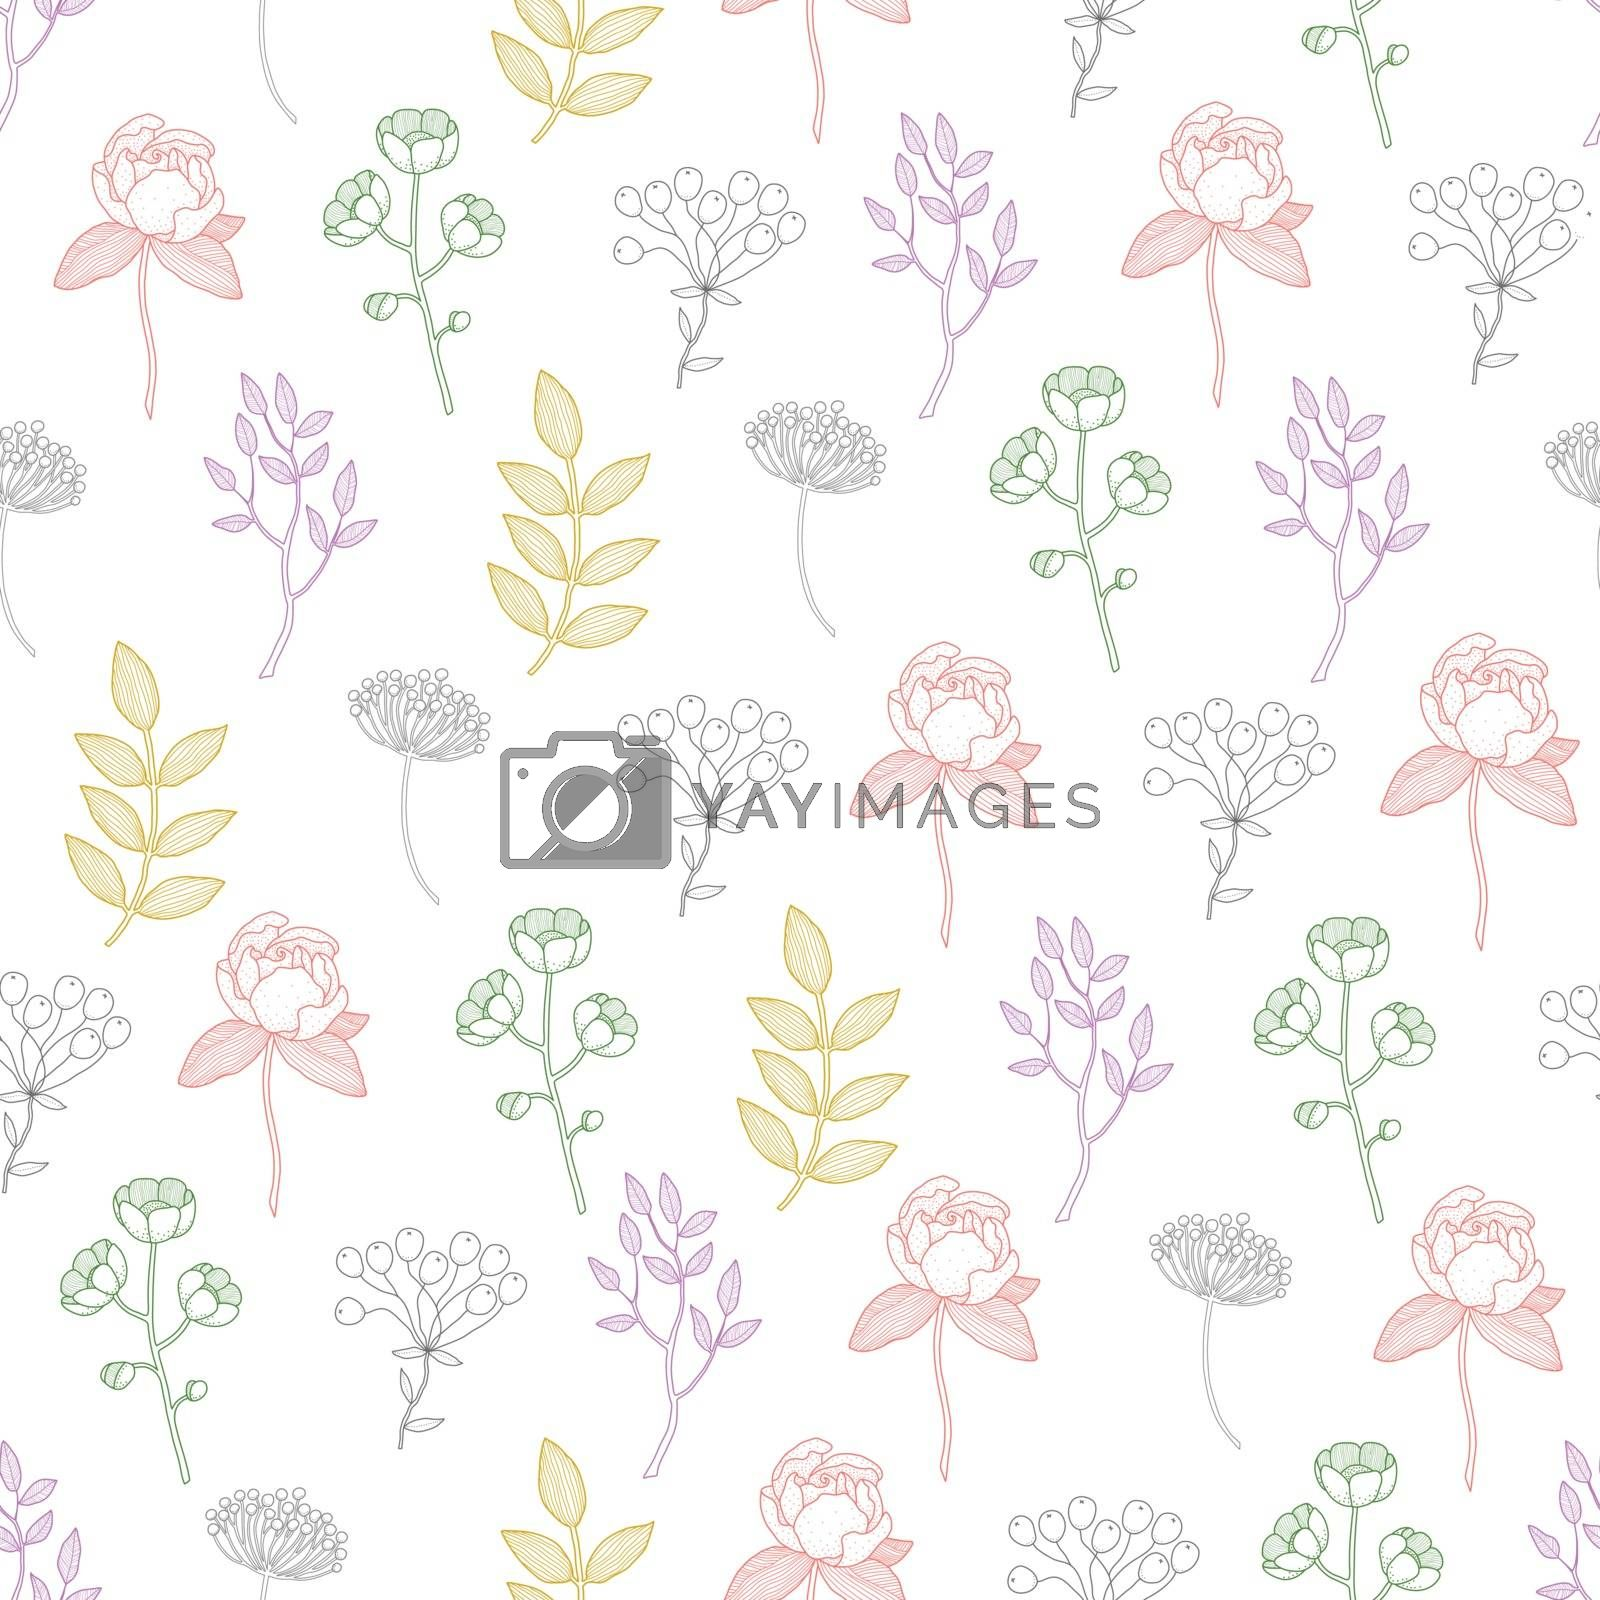 Royalty free image of Vector Colorful Growing Plants Line Art Seamless Pattern by Oksancia